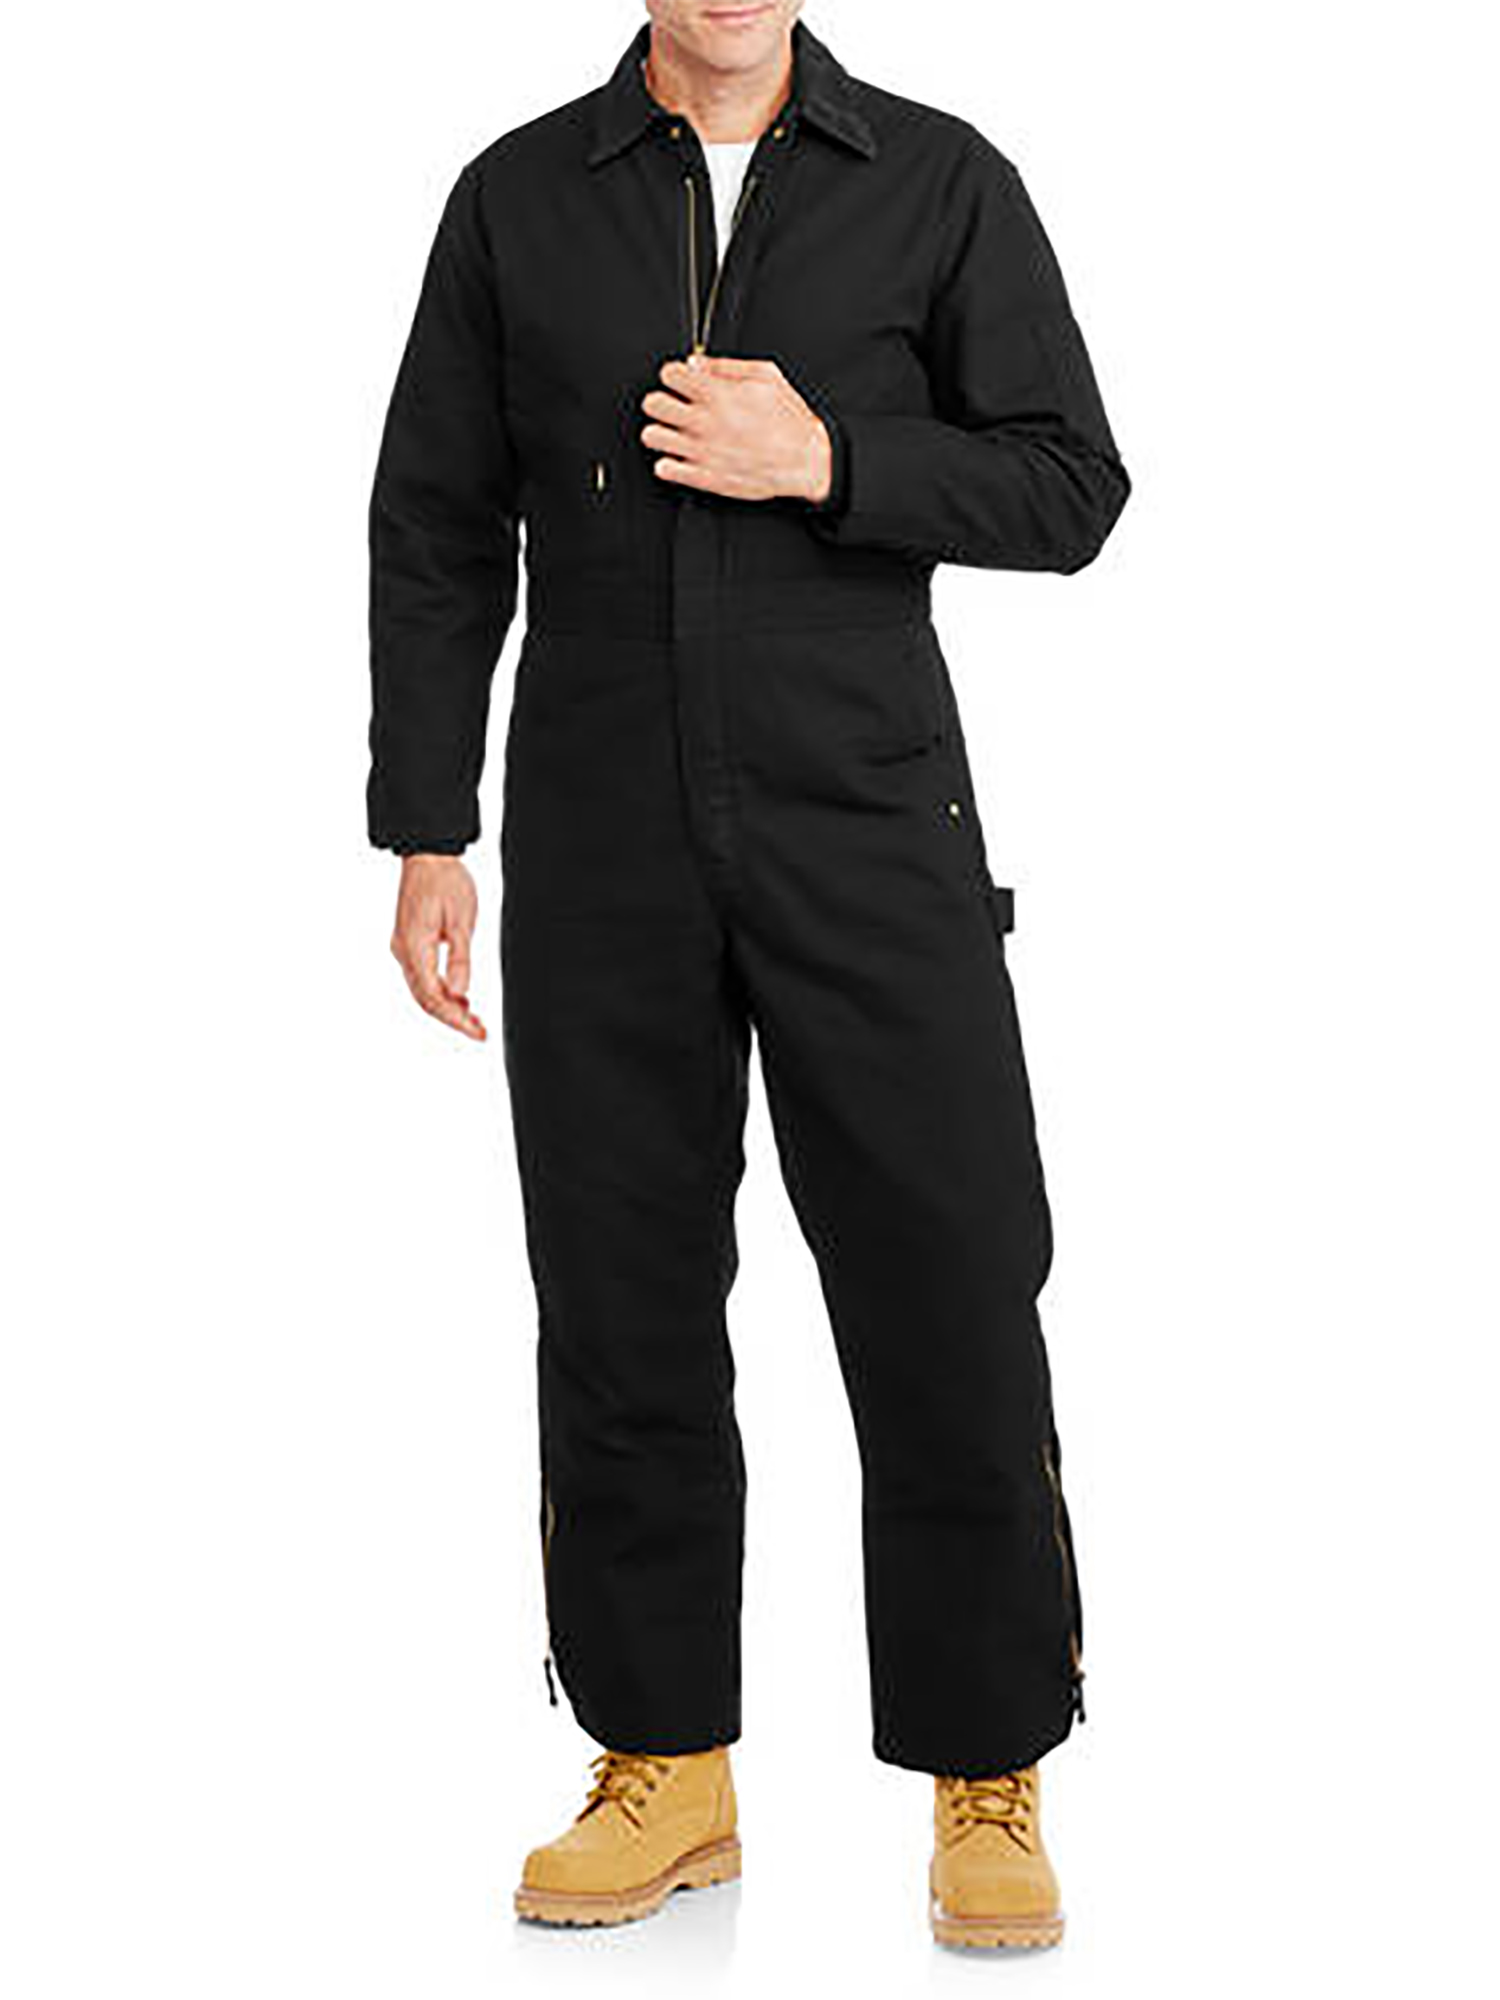 646d52508aa Walls mens insulated duck coverall jpeg 450x450 Mens insulated coveralls  walmart